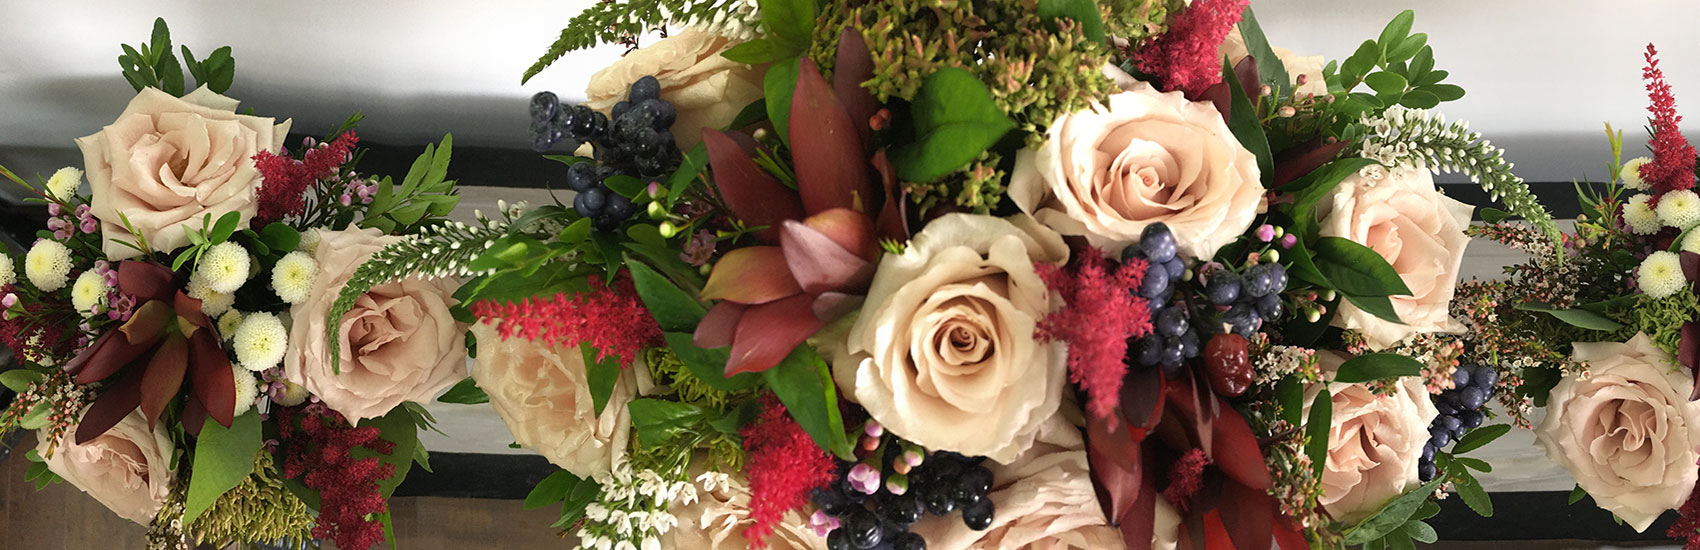 Kelowna Professional Florist and Flower Shop Floral Designs by Lee